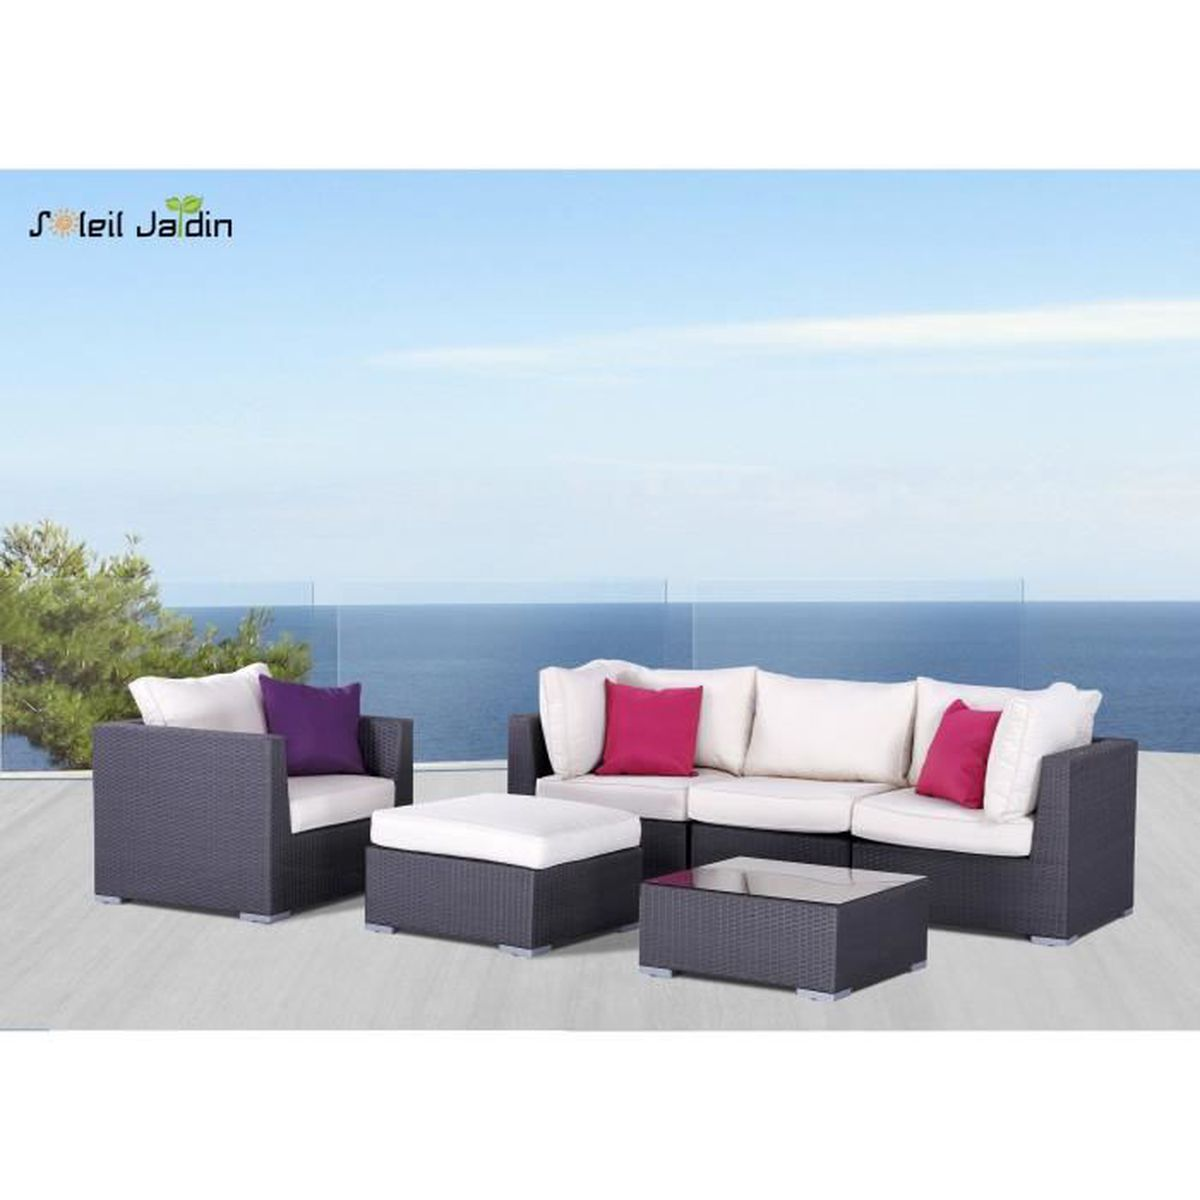 salon de jardin en r sine tress e venise gris achat vente salon de jardin salon de jardin. Black Bedroom Furniture Sets. Home Design Ideas